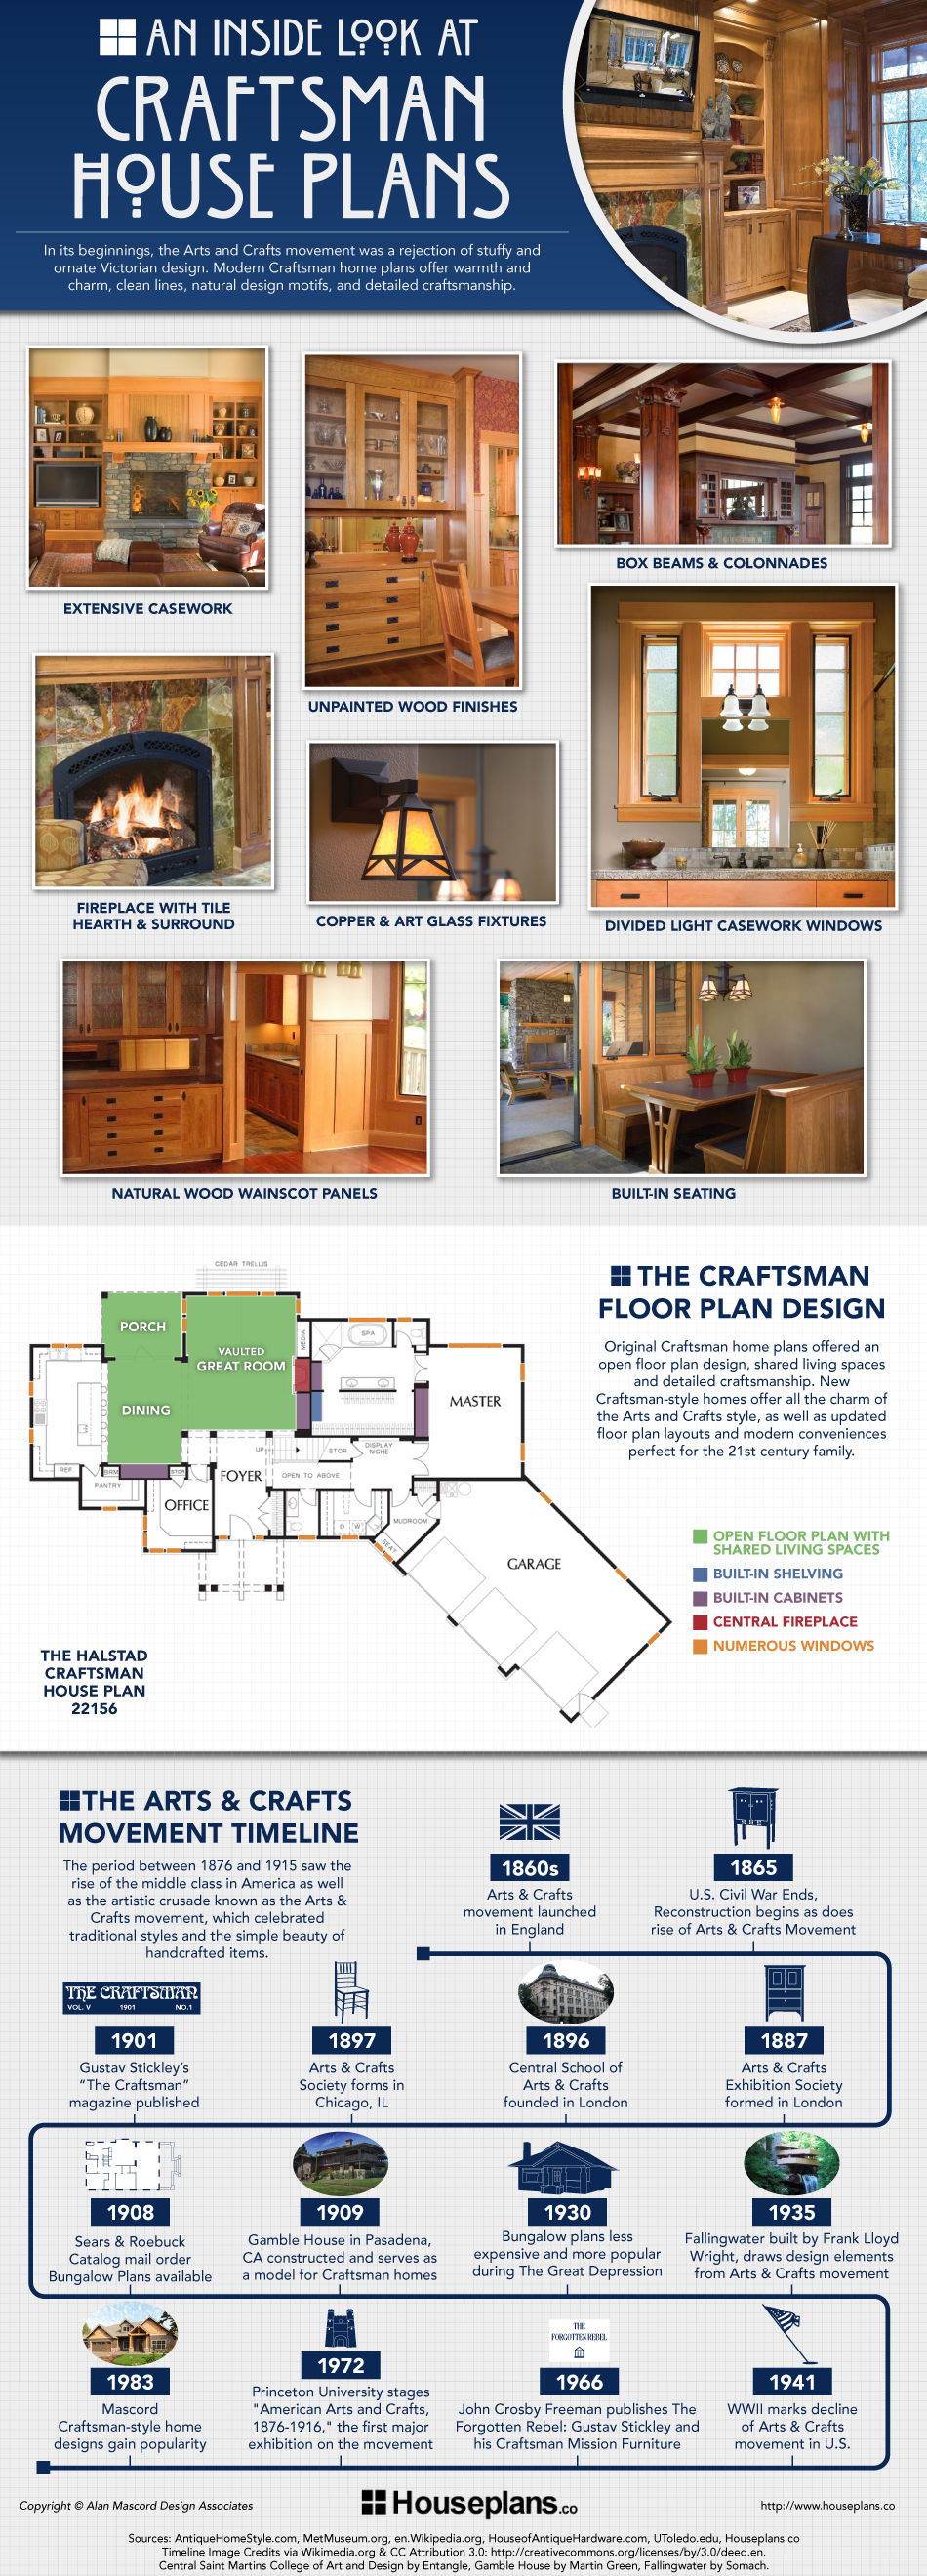 An Inside Look at Craftsman House Plans – Home Floor Plans With Interior Photos